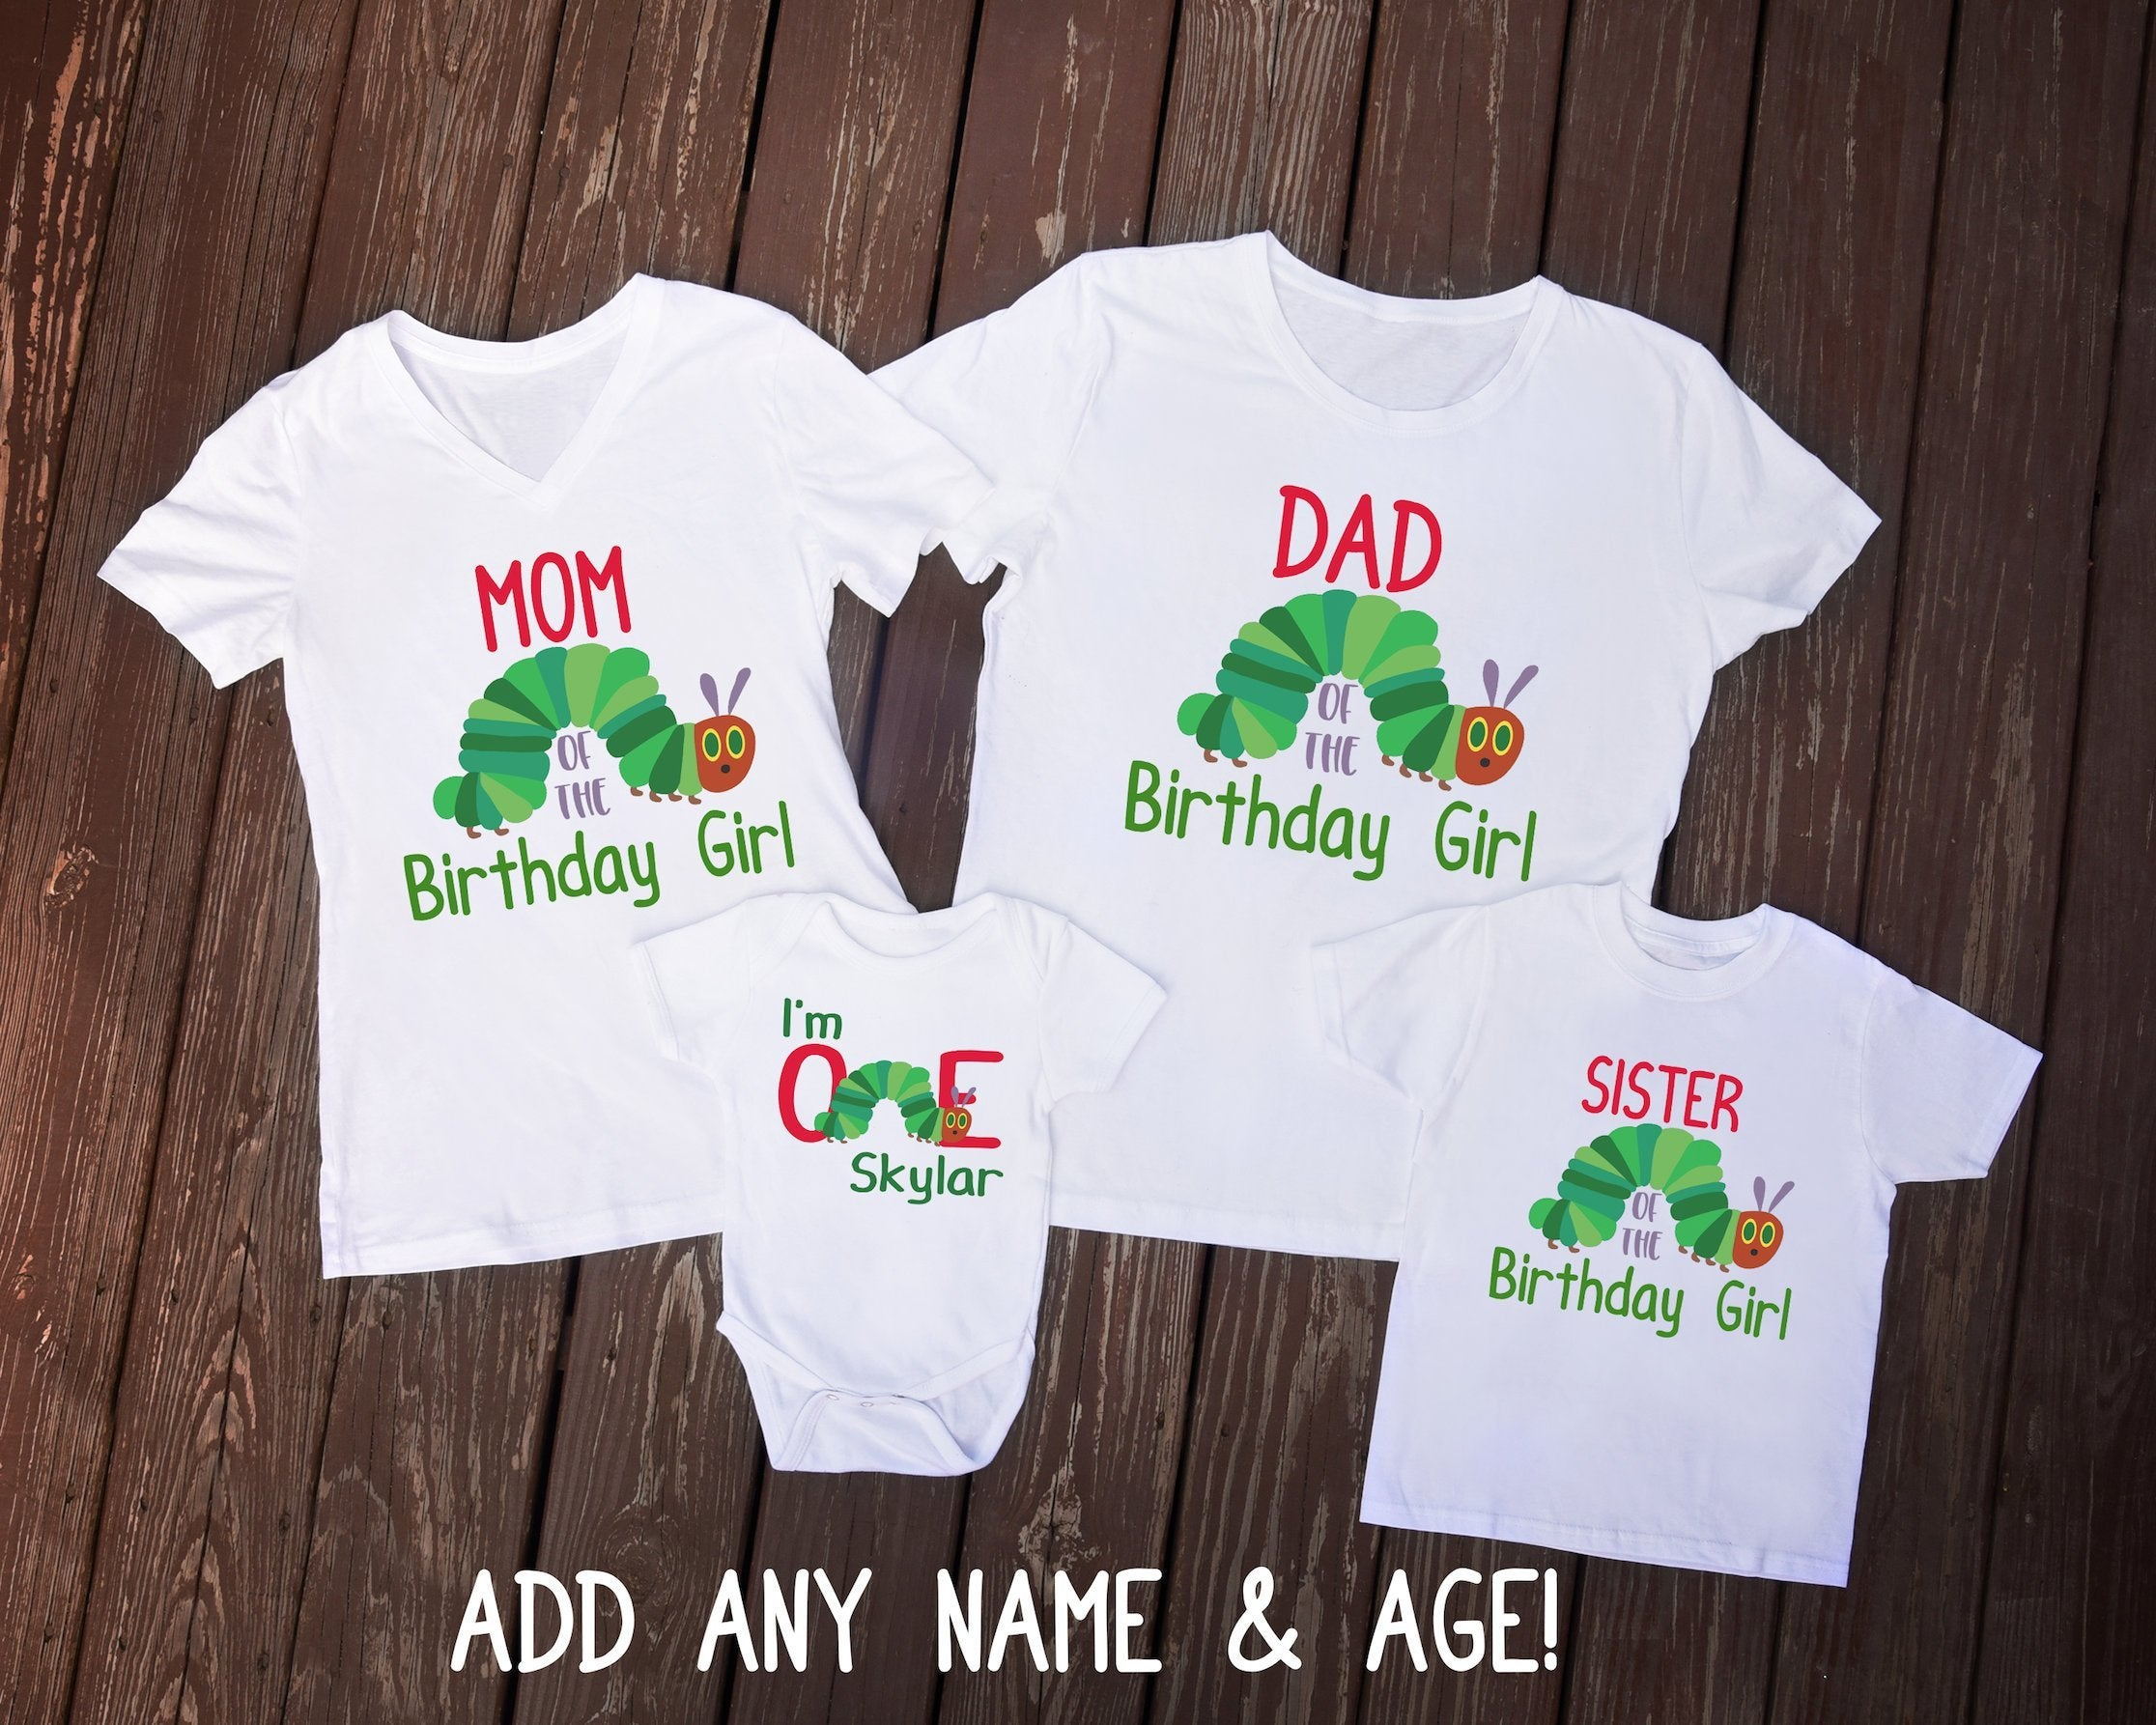 The Very Hungry Caterpillar I'm One Family of the Birthday Girl or Boy Shirt Set